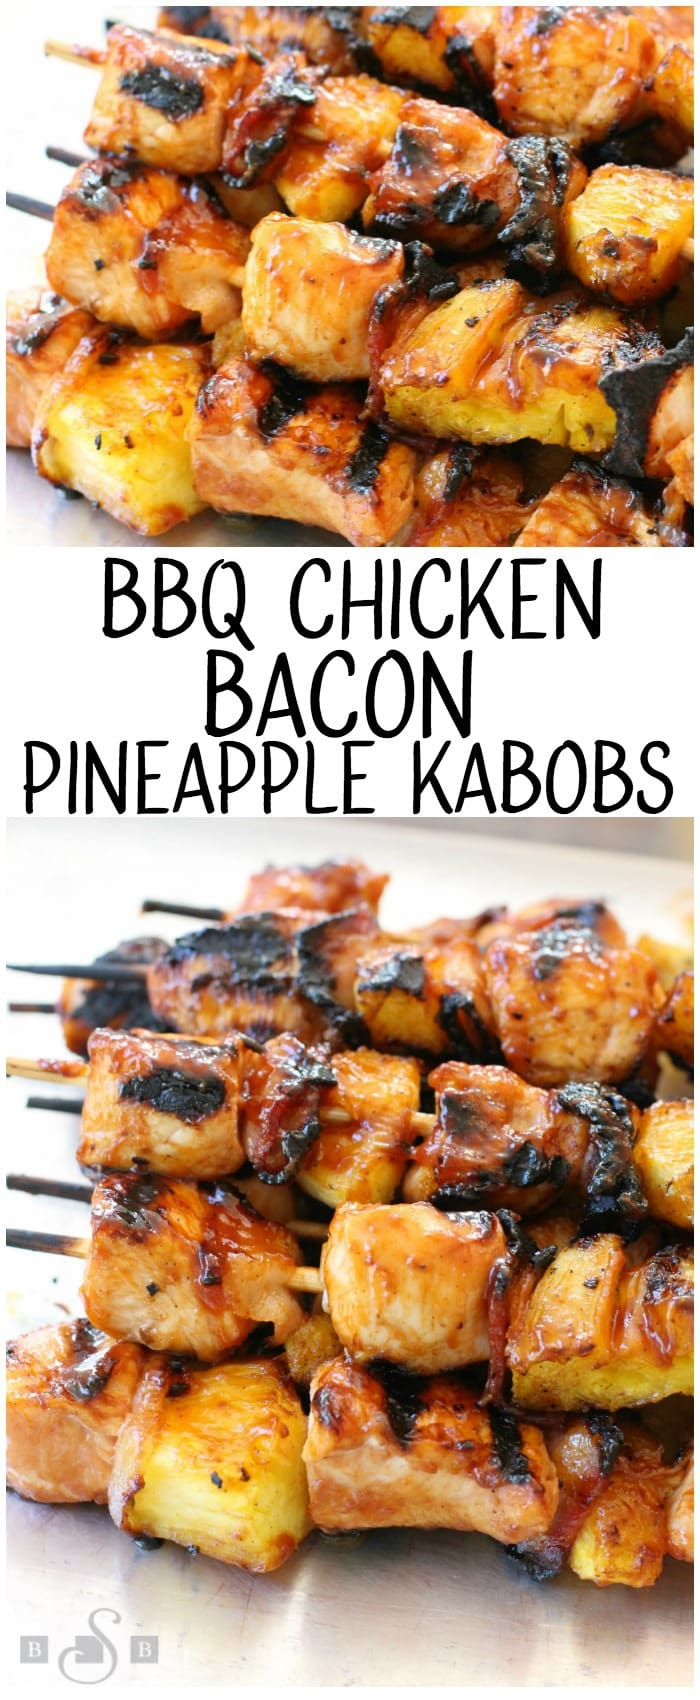 BBQ Chicken Kabobs with Bacon and Pineapple recipe with tender chicken grilled with pineapple and bacon then slathered with your favorite BBQ sauce. These are the ultimate BBQ chicken kabobs and are perfect for your next cookout! Easy and SUPER TASTY BBQ Chicken Kabob recipe from Butter With A Side of Bread